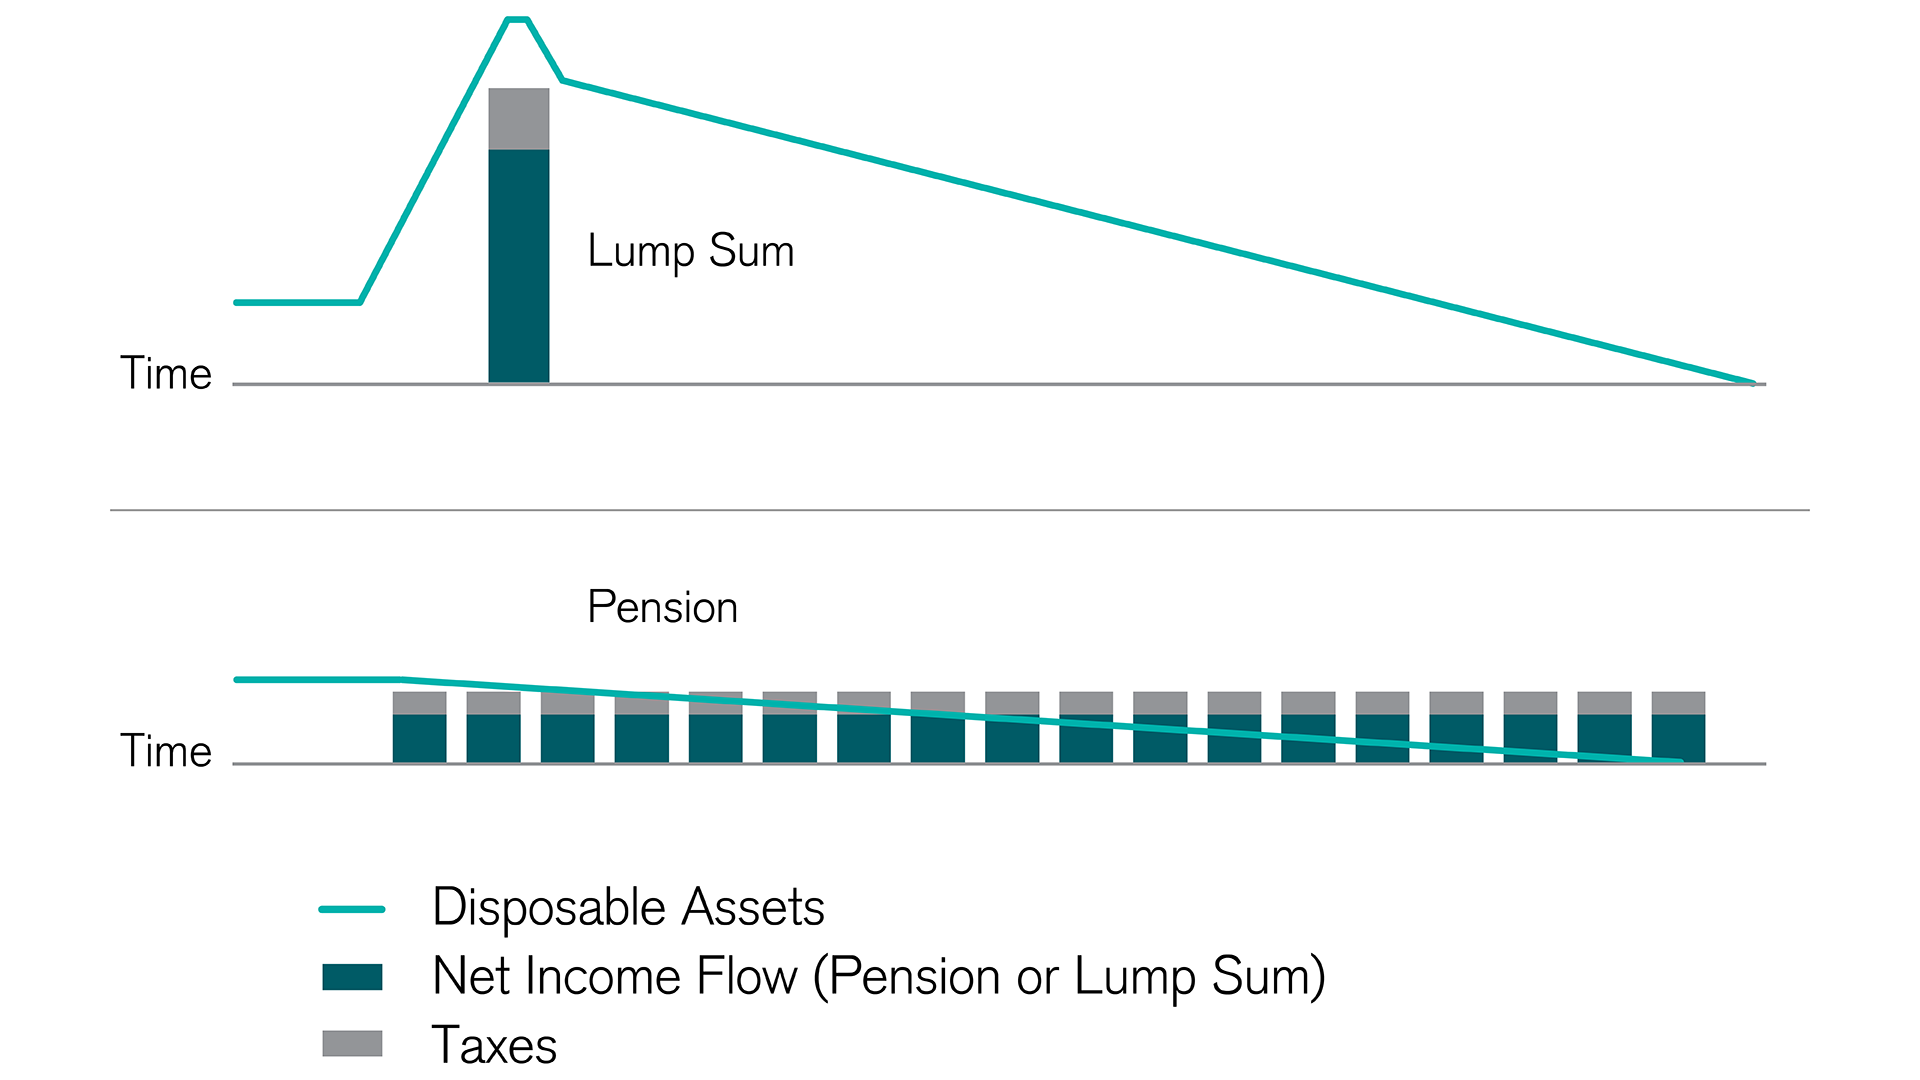 pension or lump sum the two options over time